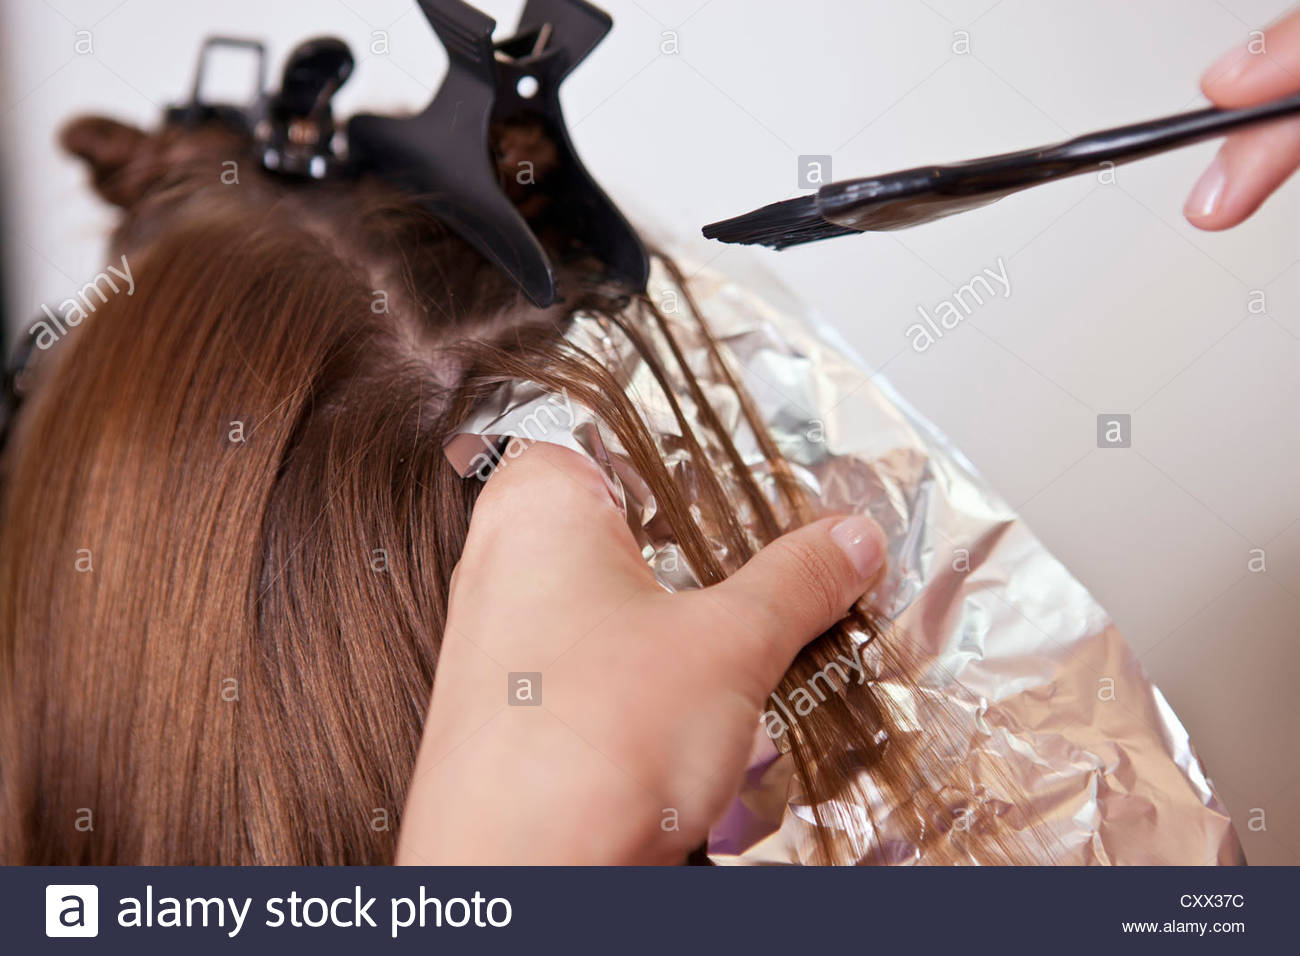 A female client having her hair coloured in a hairdressing salon, close up - Stock Image